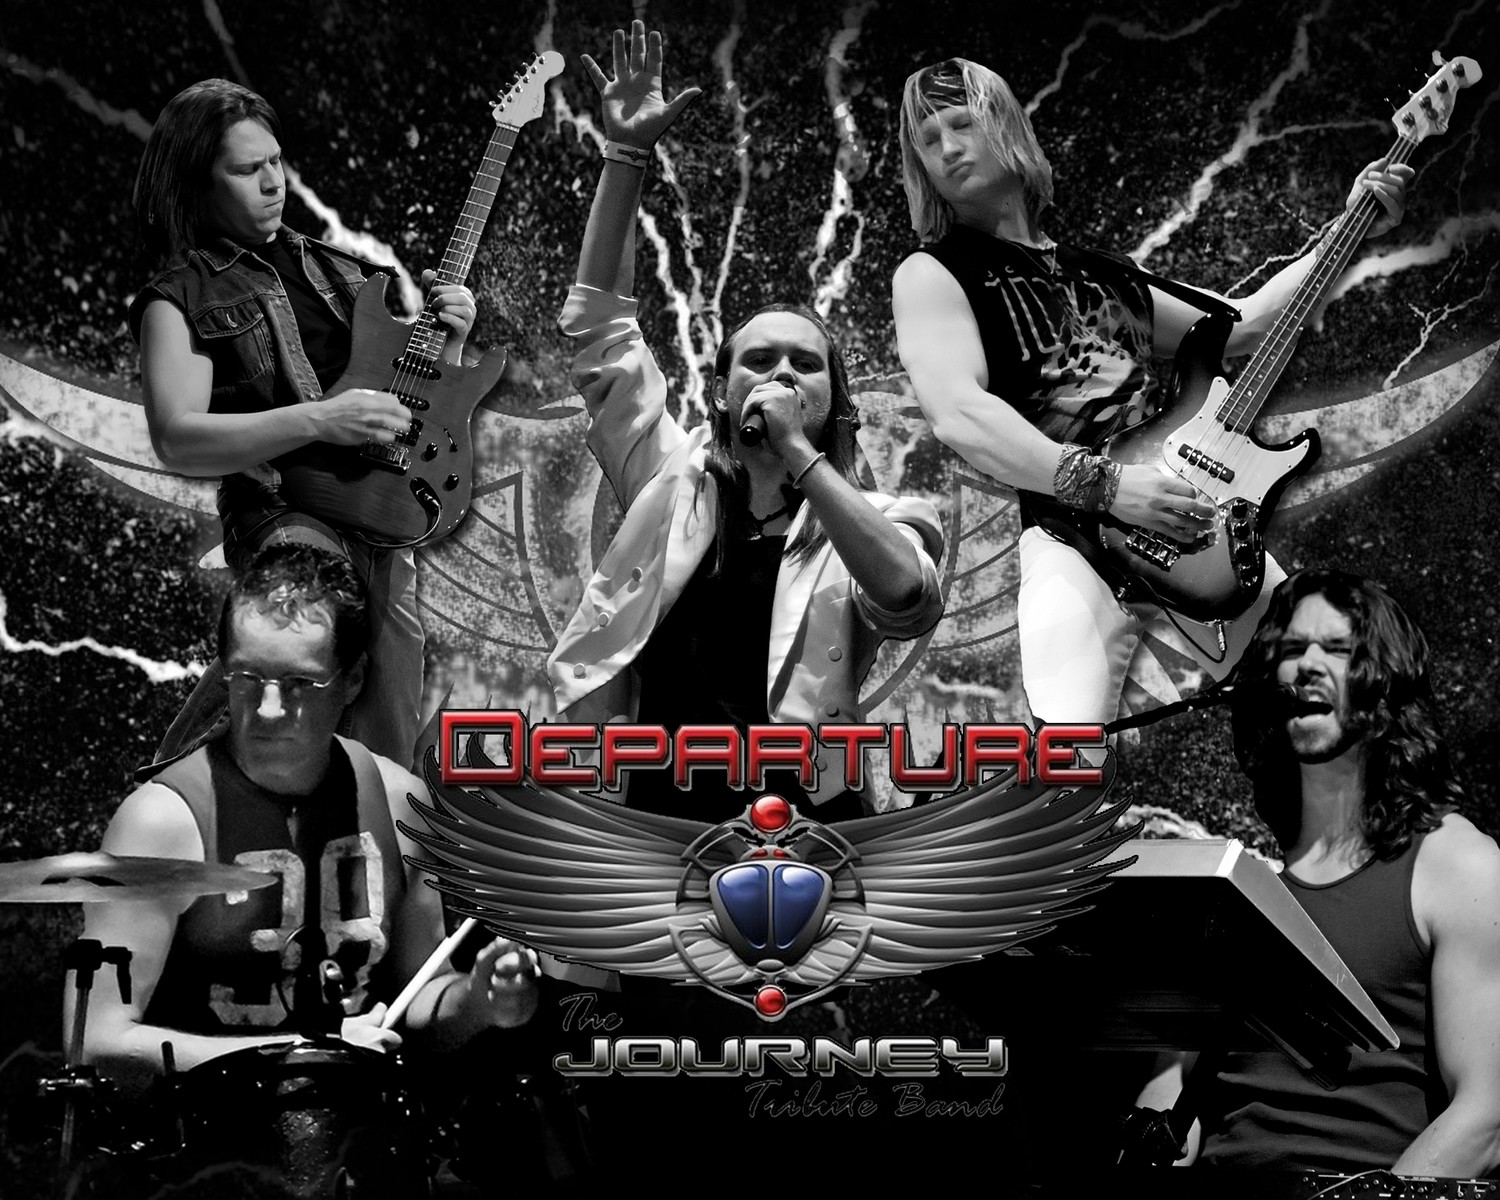 Departure (Journey Tribute Band) Saturday June 22nd 9:00pm